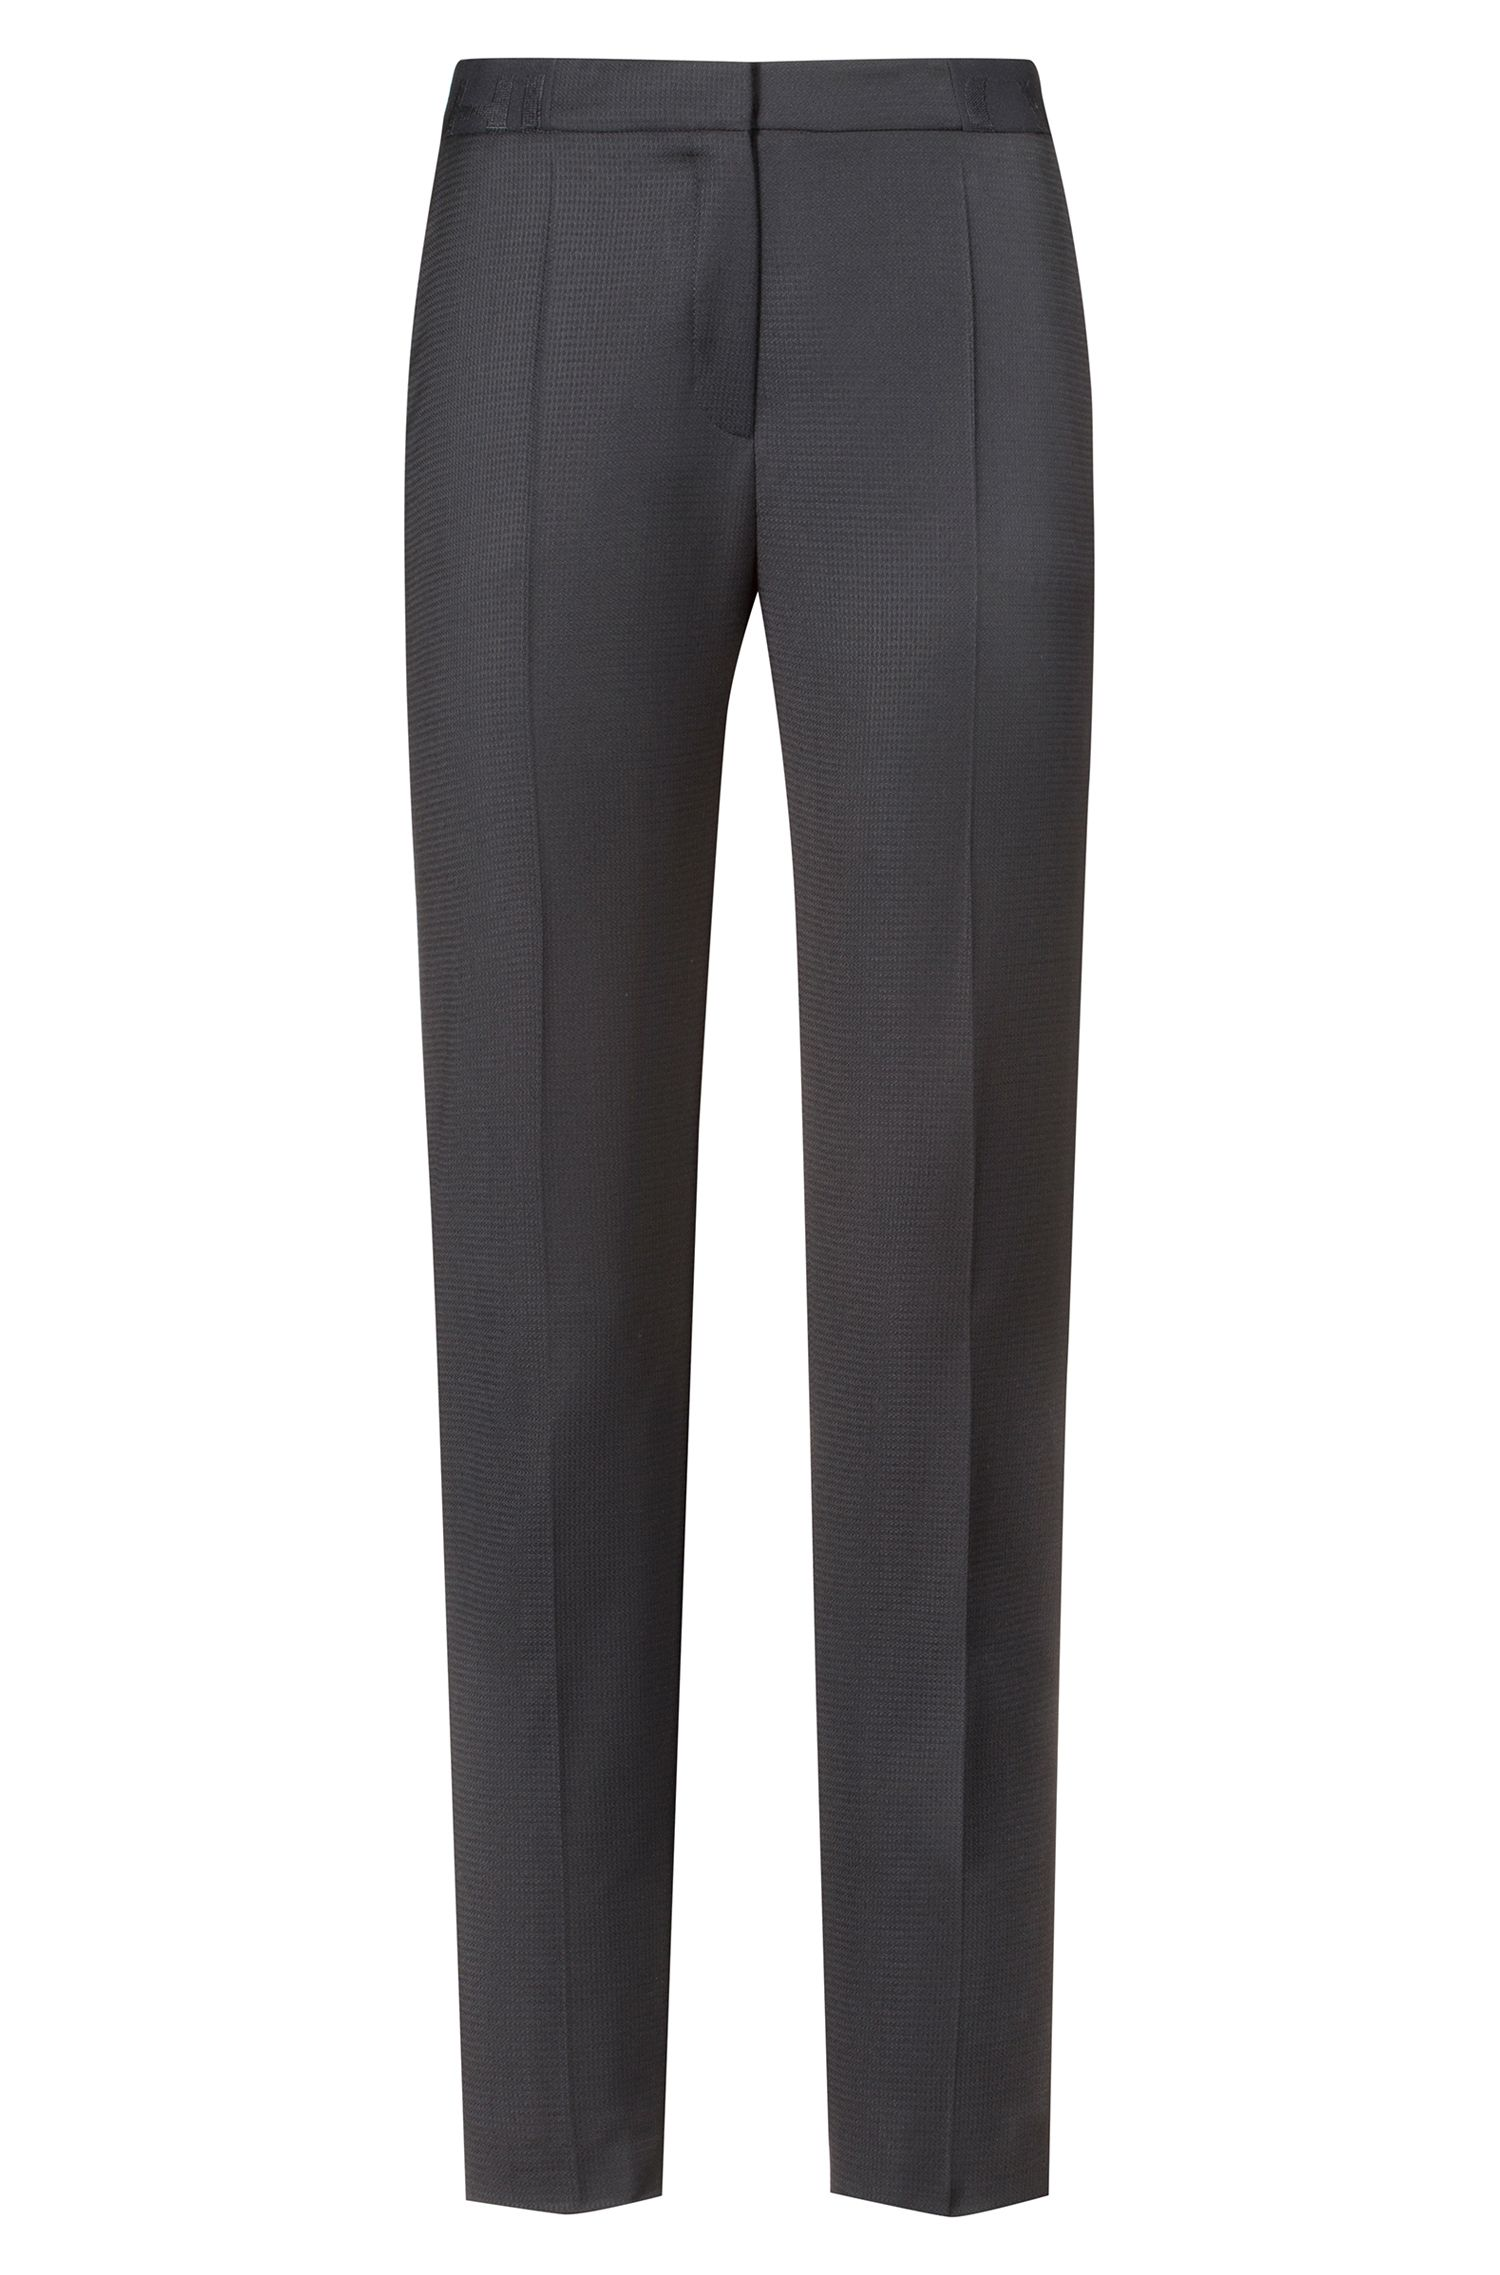 Regular-fit cigarette pants met logo op de tailleband, Bedrukt